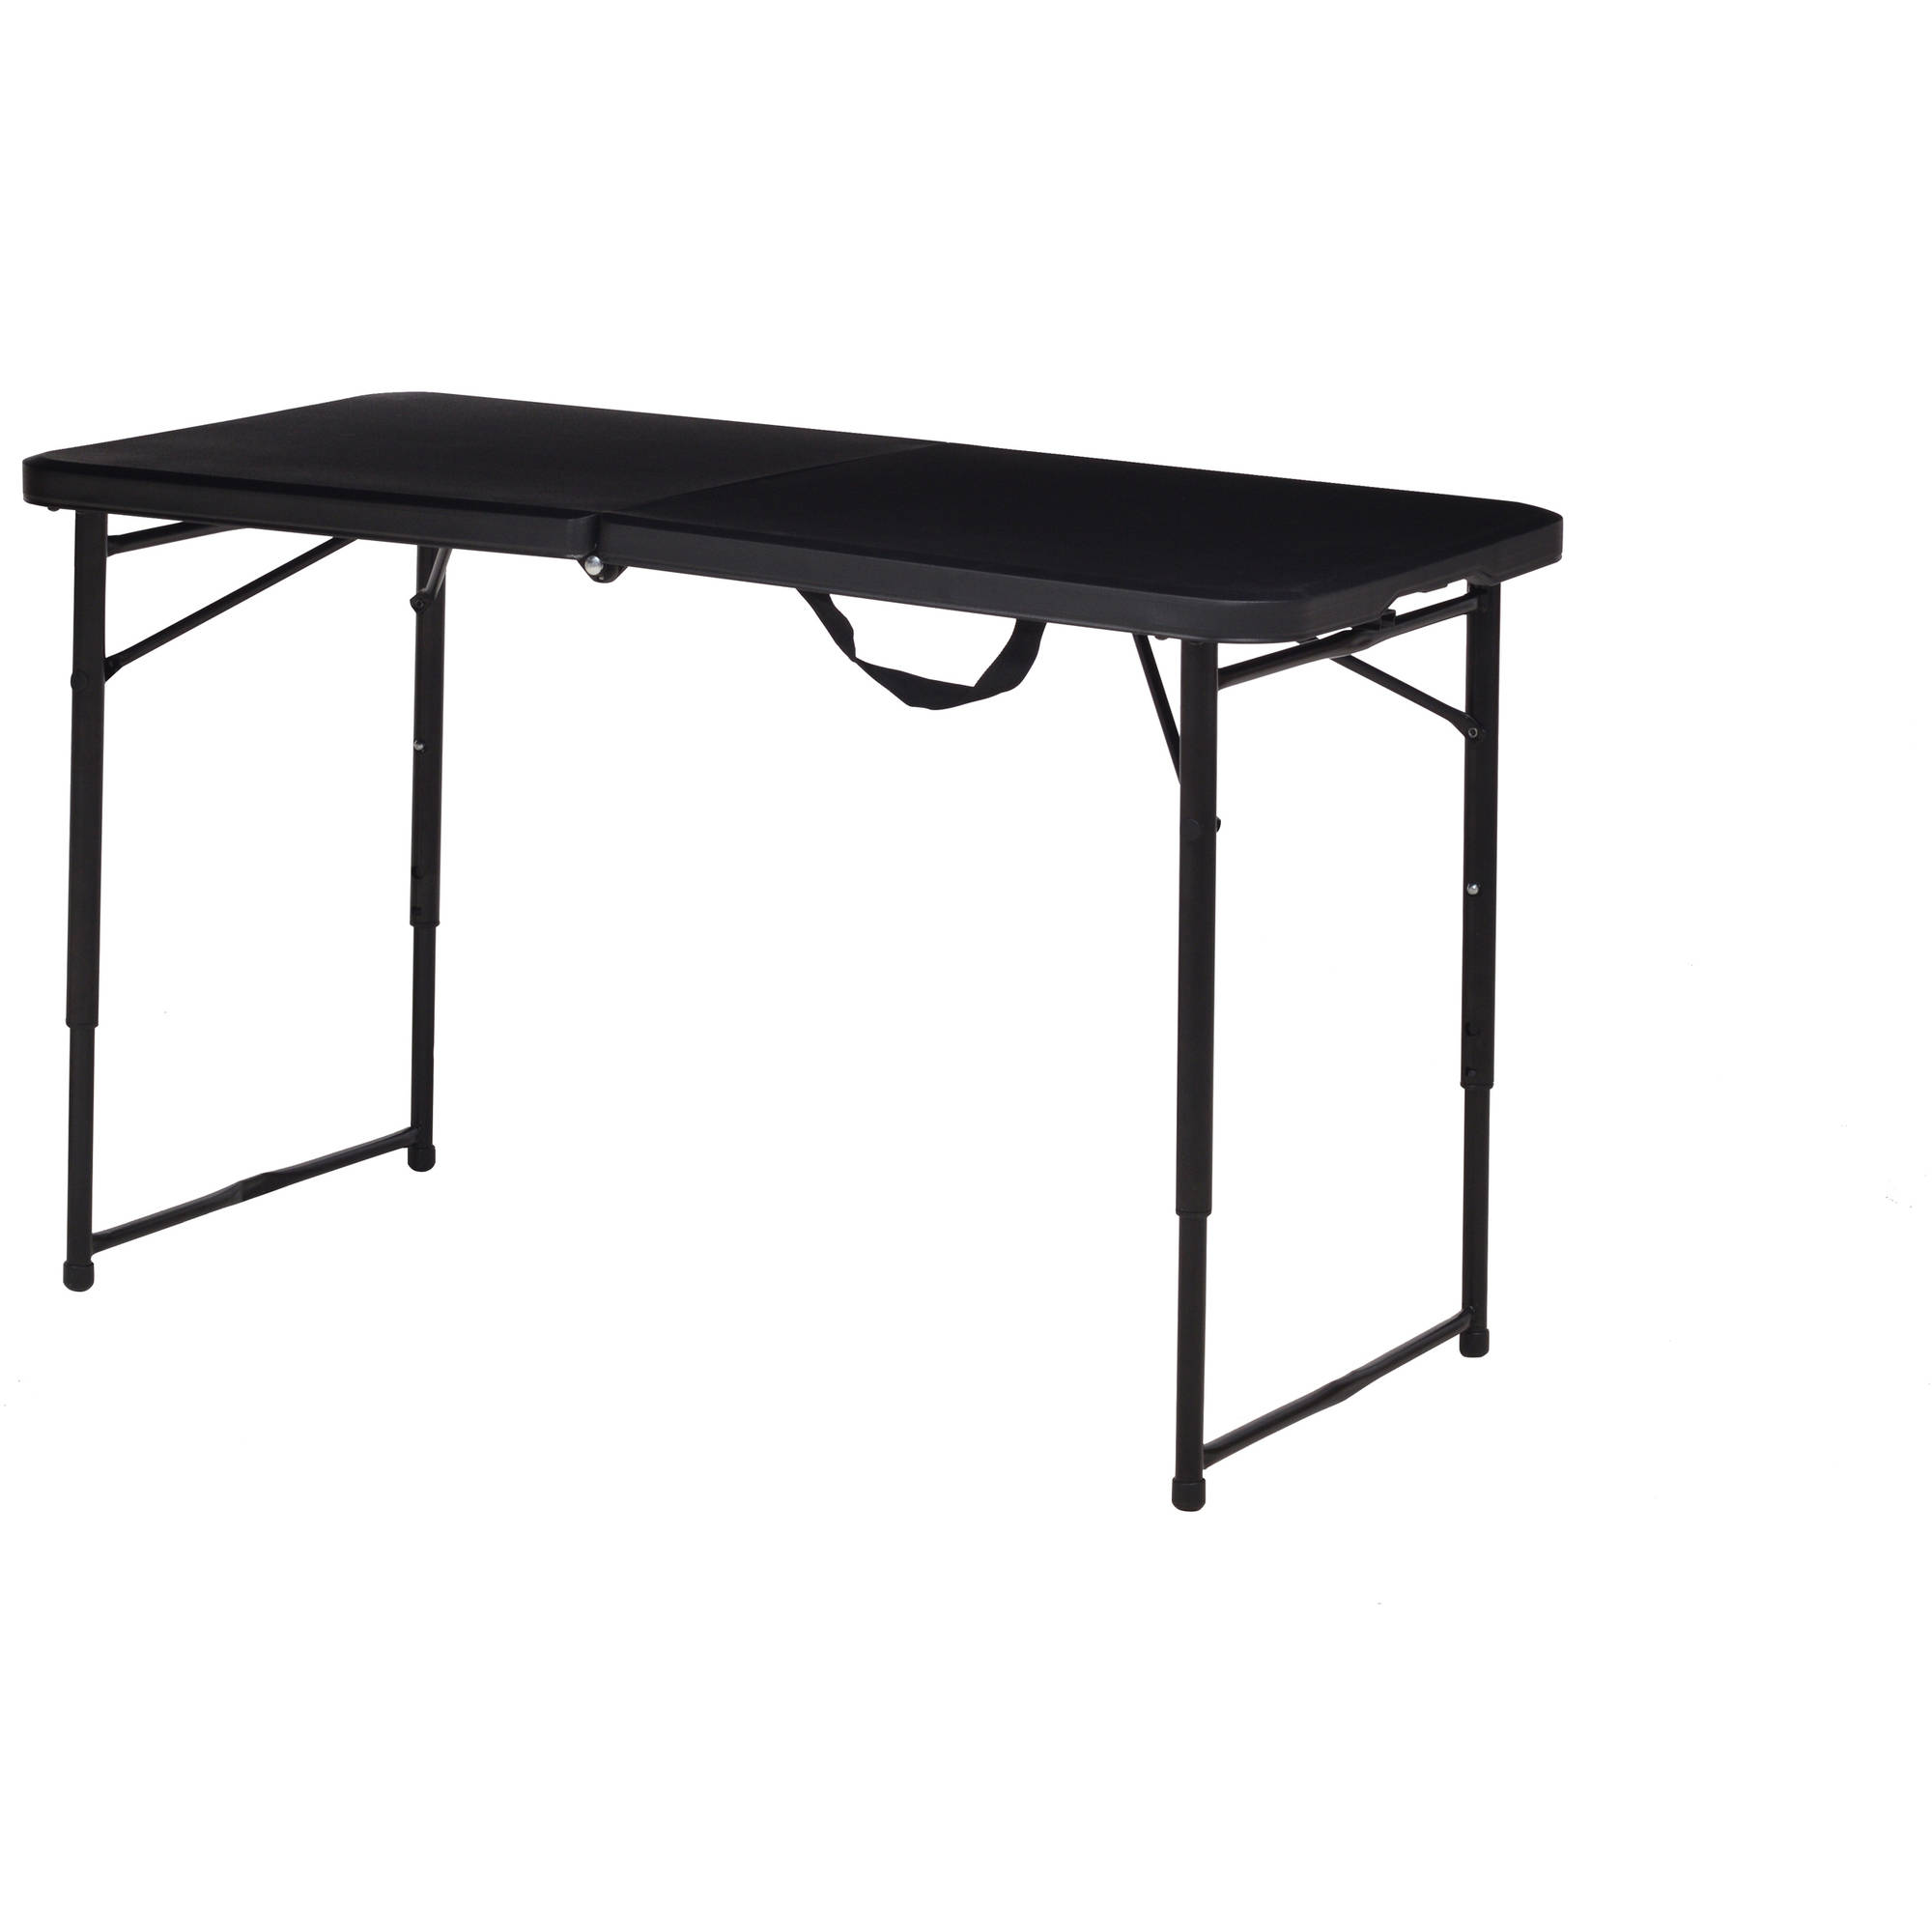 Canadian Tire Folding Table Likewise Resin 6 Ft Customer Reviews